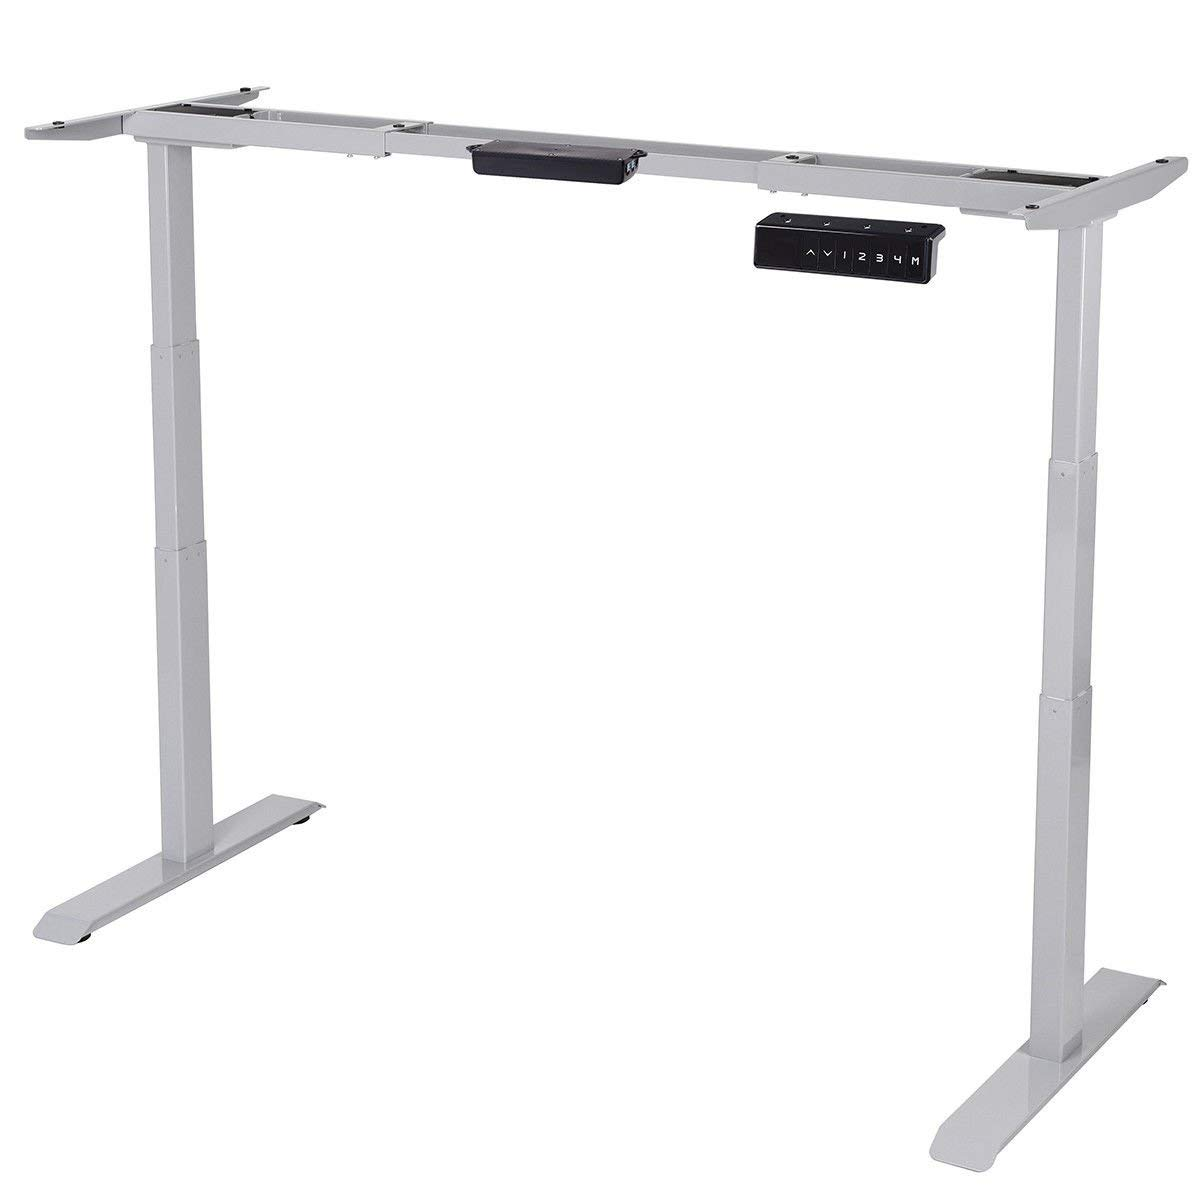 Tangkula Electric Standing Desk Frame Home Office Adjustable Height & Width Standing Desk Frame Ergonomic Dual Motor Motorized Sit to Stand Desk with Memory Preset Handset Controller (001, Gray)